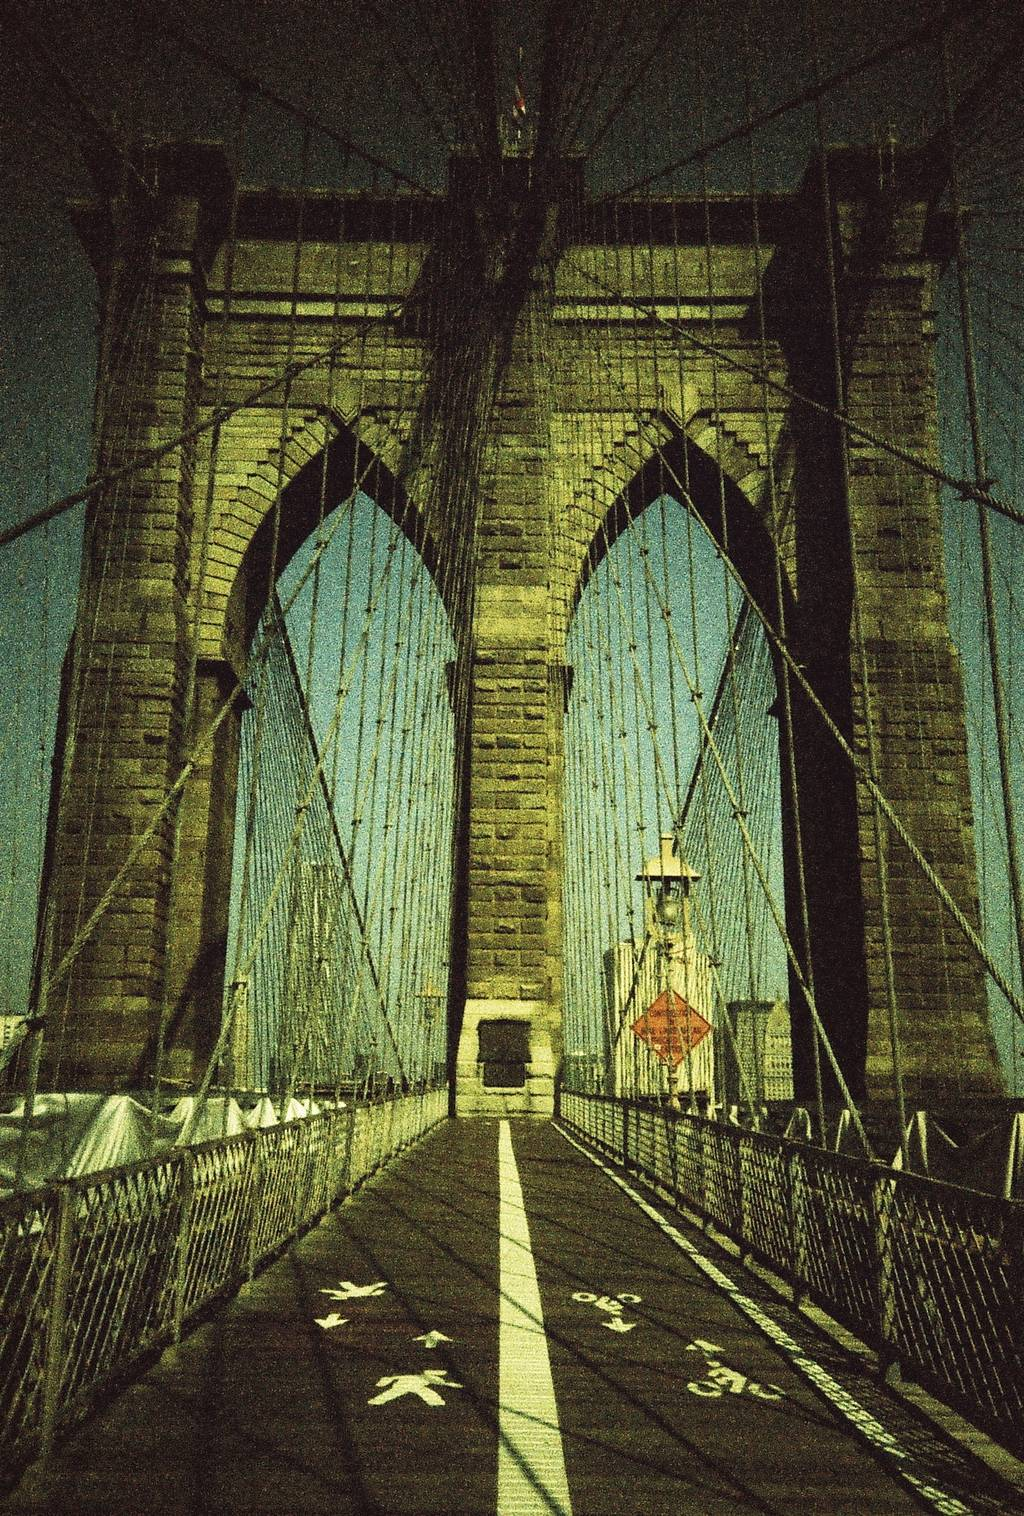 Urban Adventure: The Brooklyn Bridge